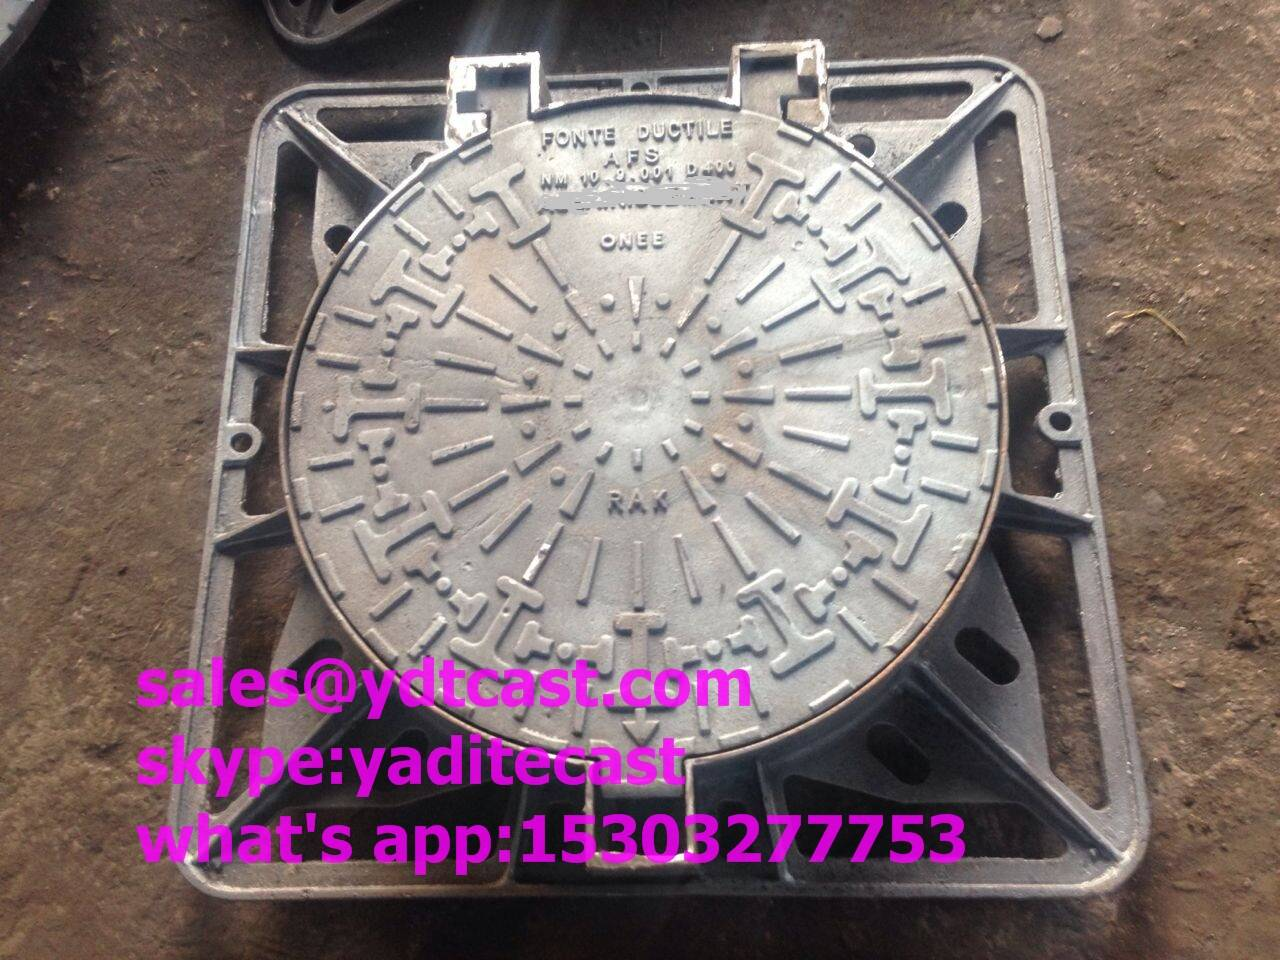 cast iron manhole cover in road C250 D400 in UK